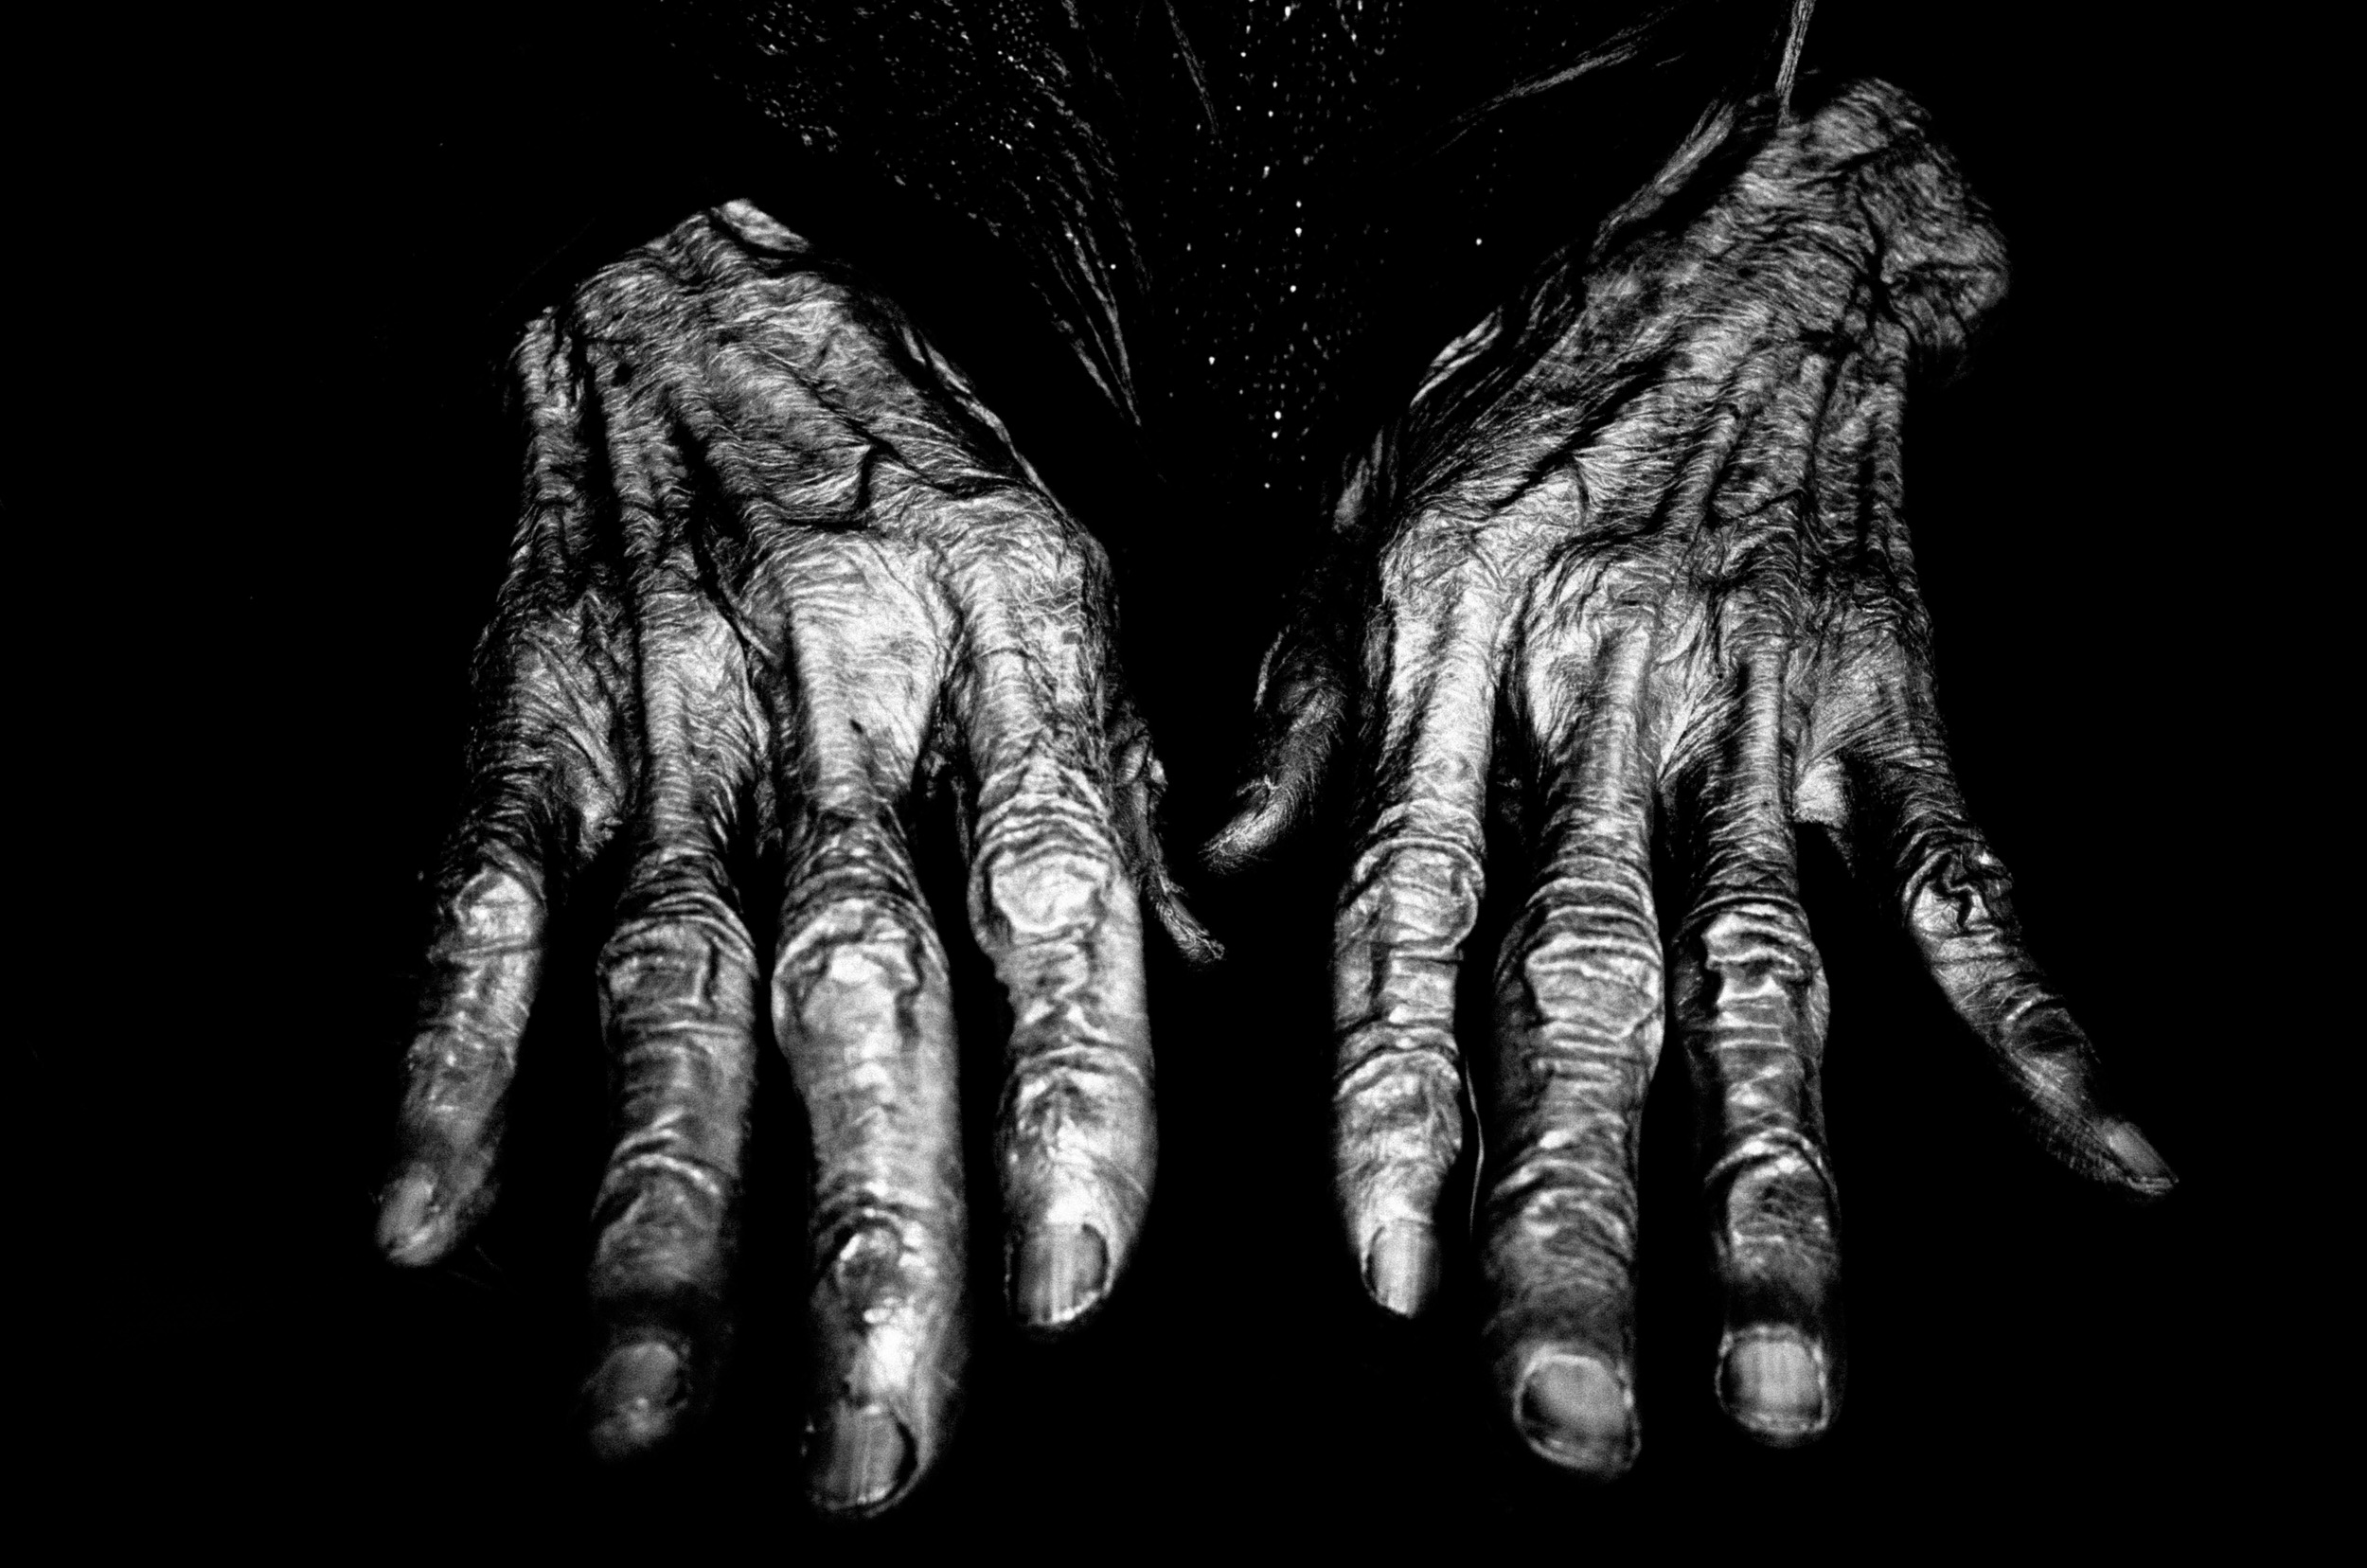 eric kim street photography black and white hands hanoimonochrome -0005801.jpg